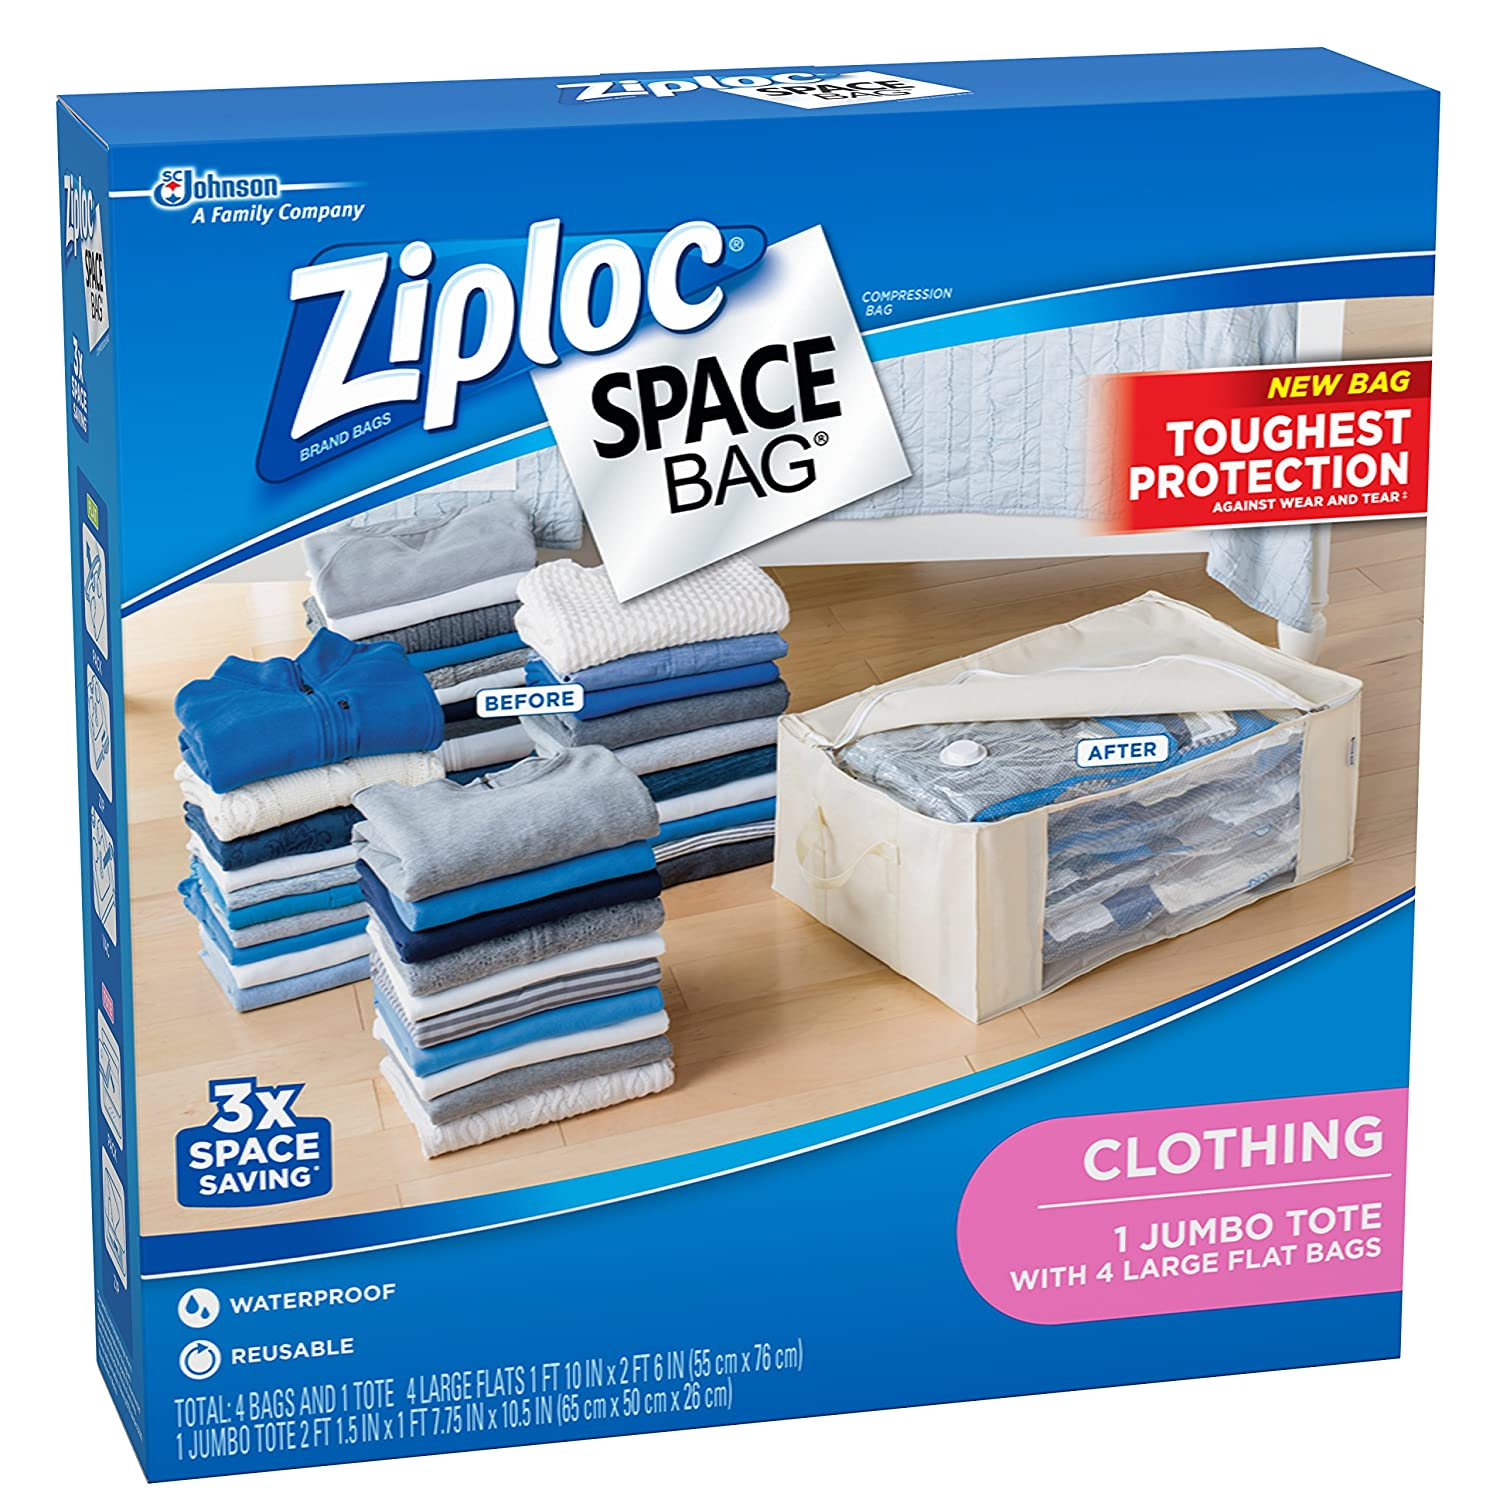 Amazon.com: Ziploc Space Bag 1 Tote Shell: Home \u0026 Kitchen